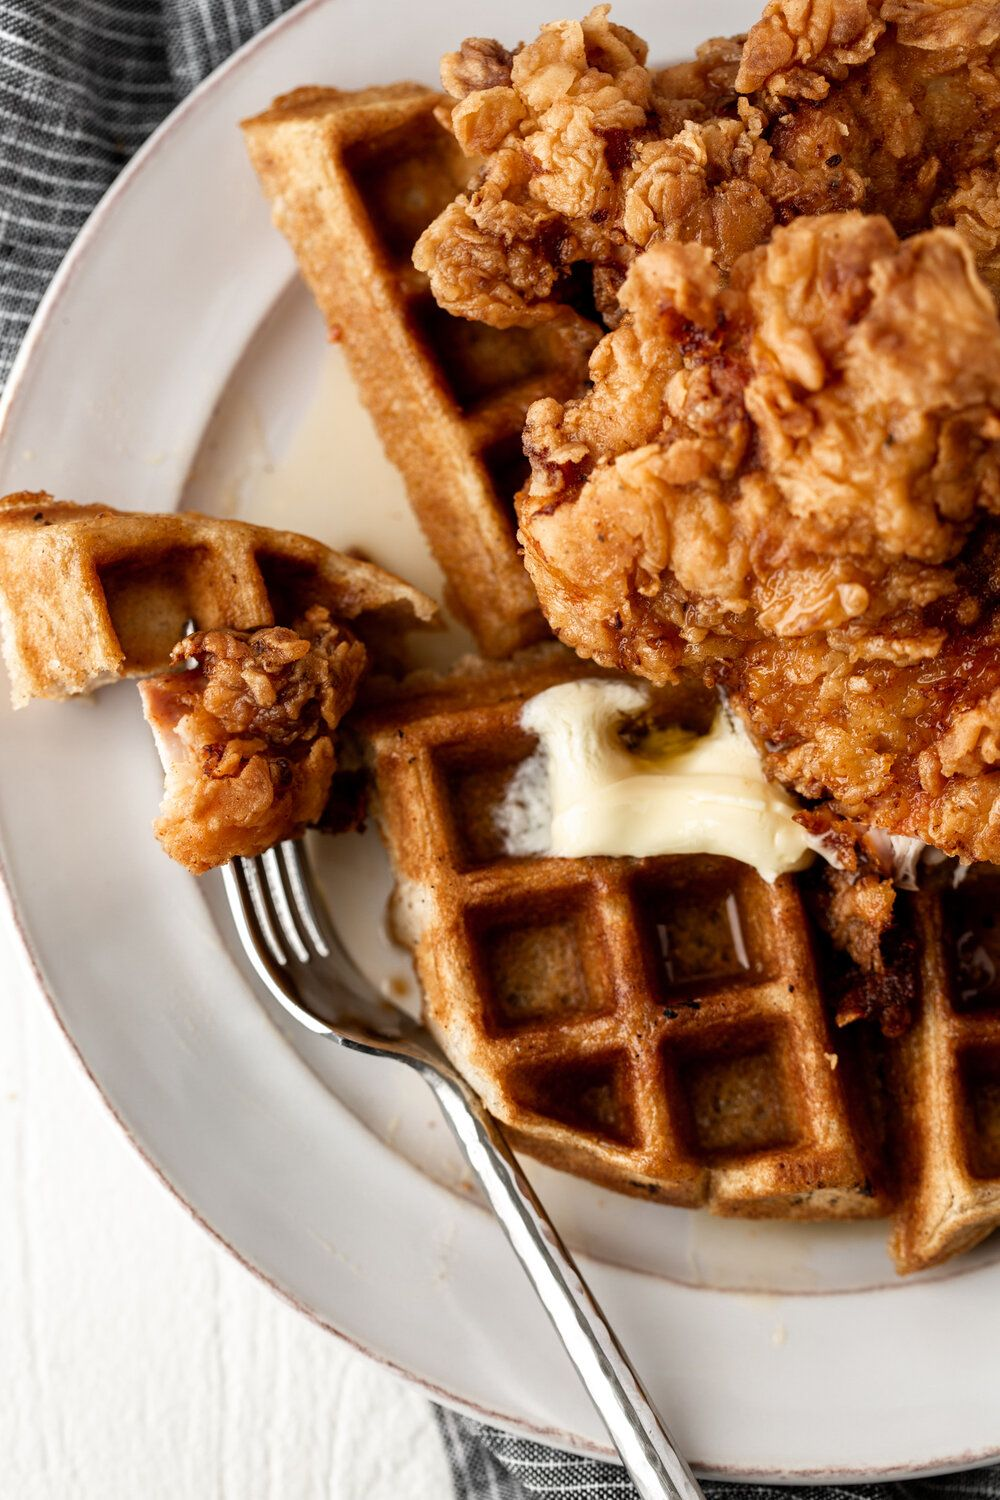 Fried Chicken And Waffles With Hot Sauce Maple Syrup Cooking With Cocktail Rings Fried Chicken And Waffles Chicken And Waffles Food